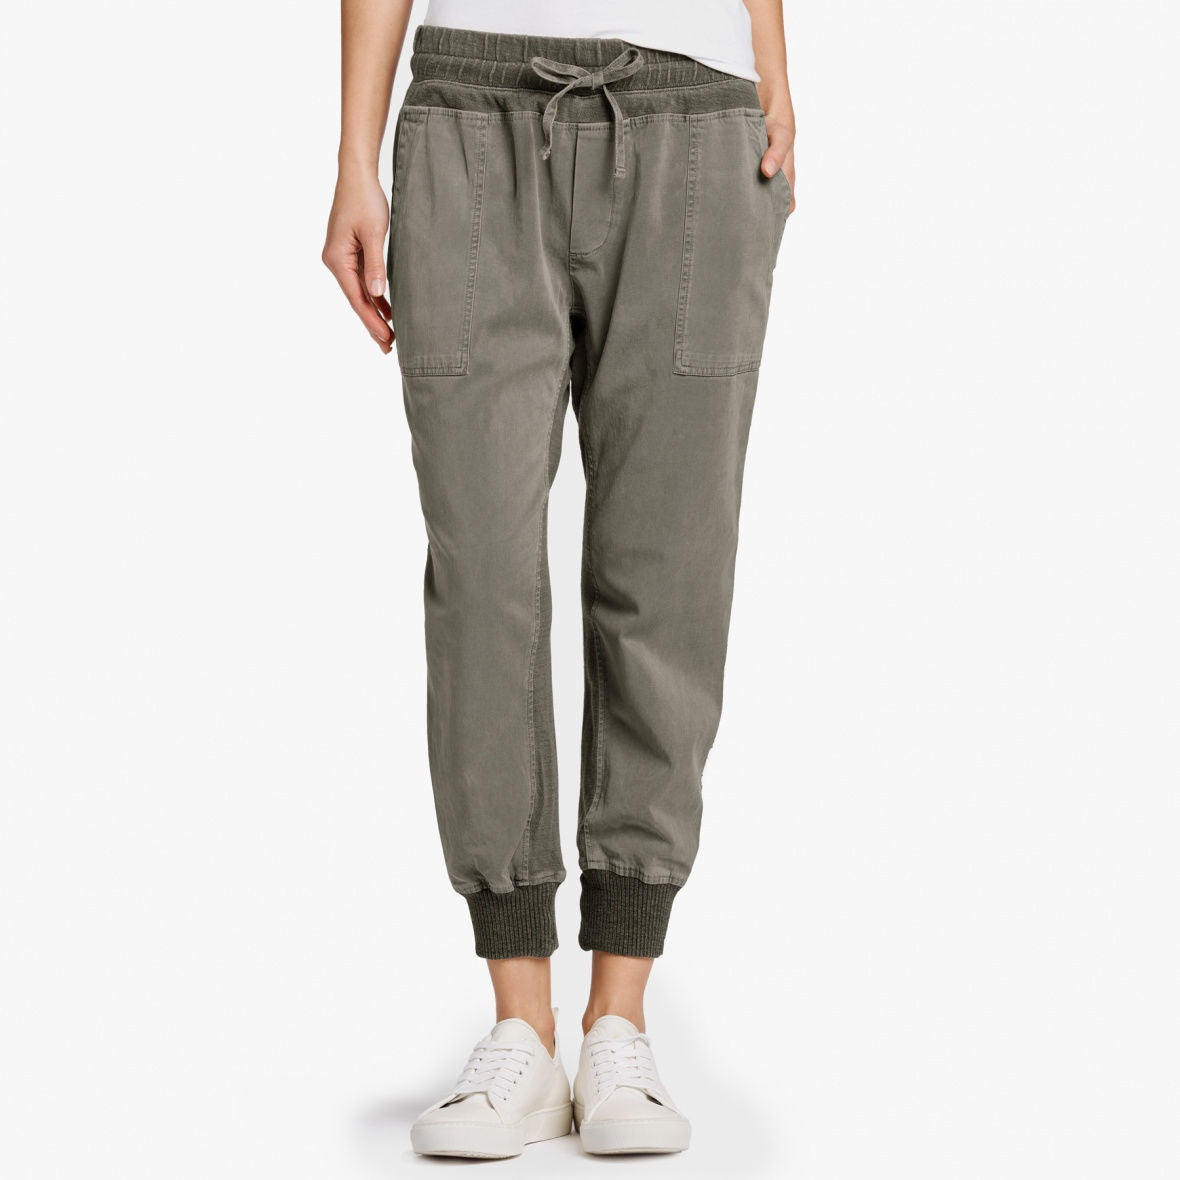 James Perse - Contrast Sweat Pant - Army Green